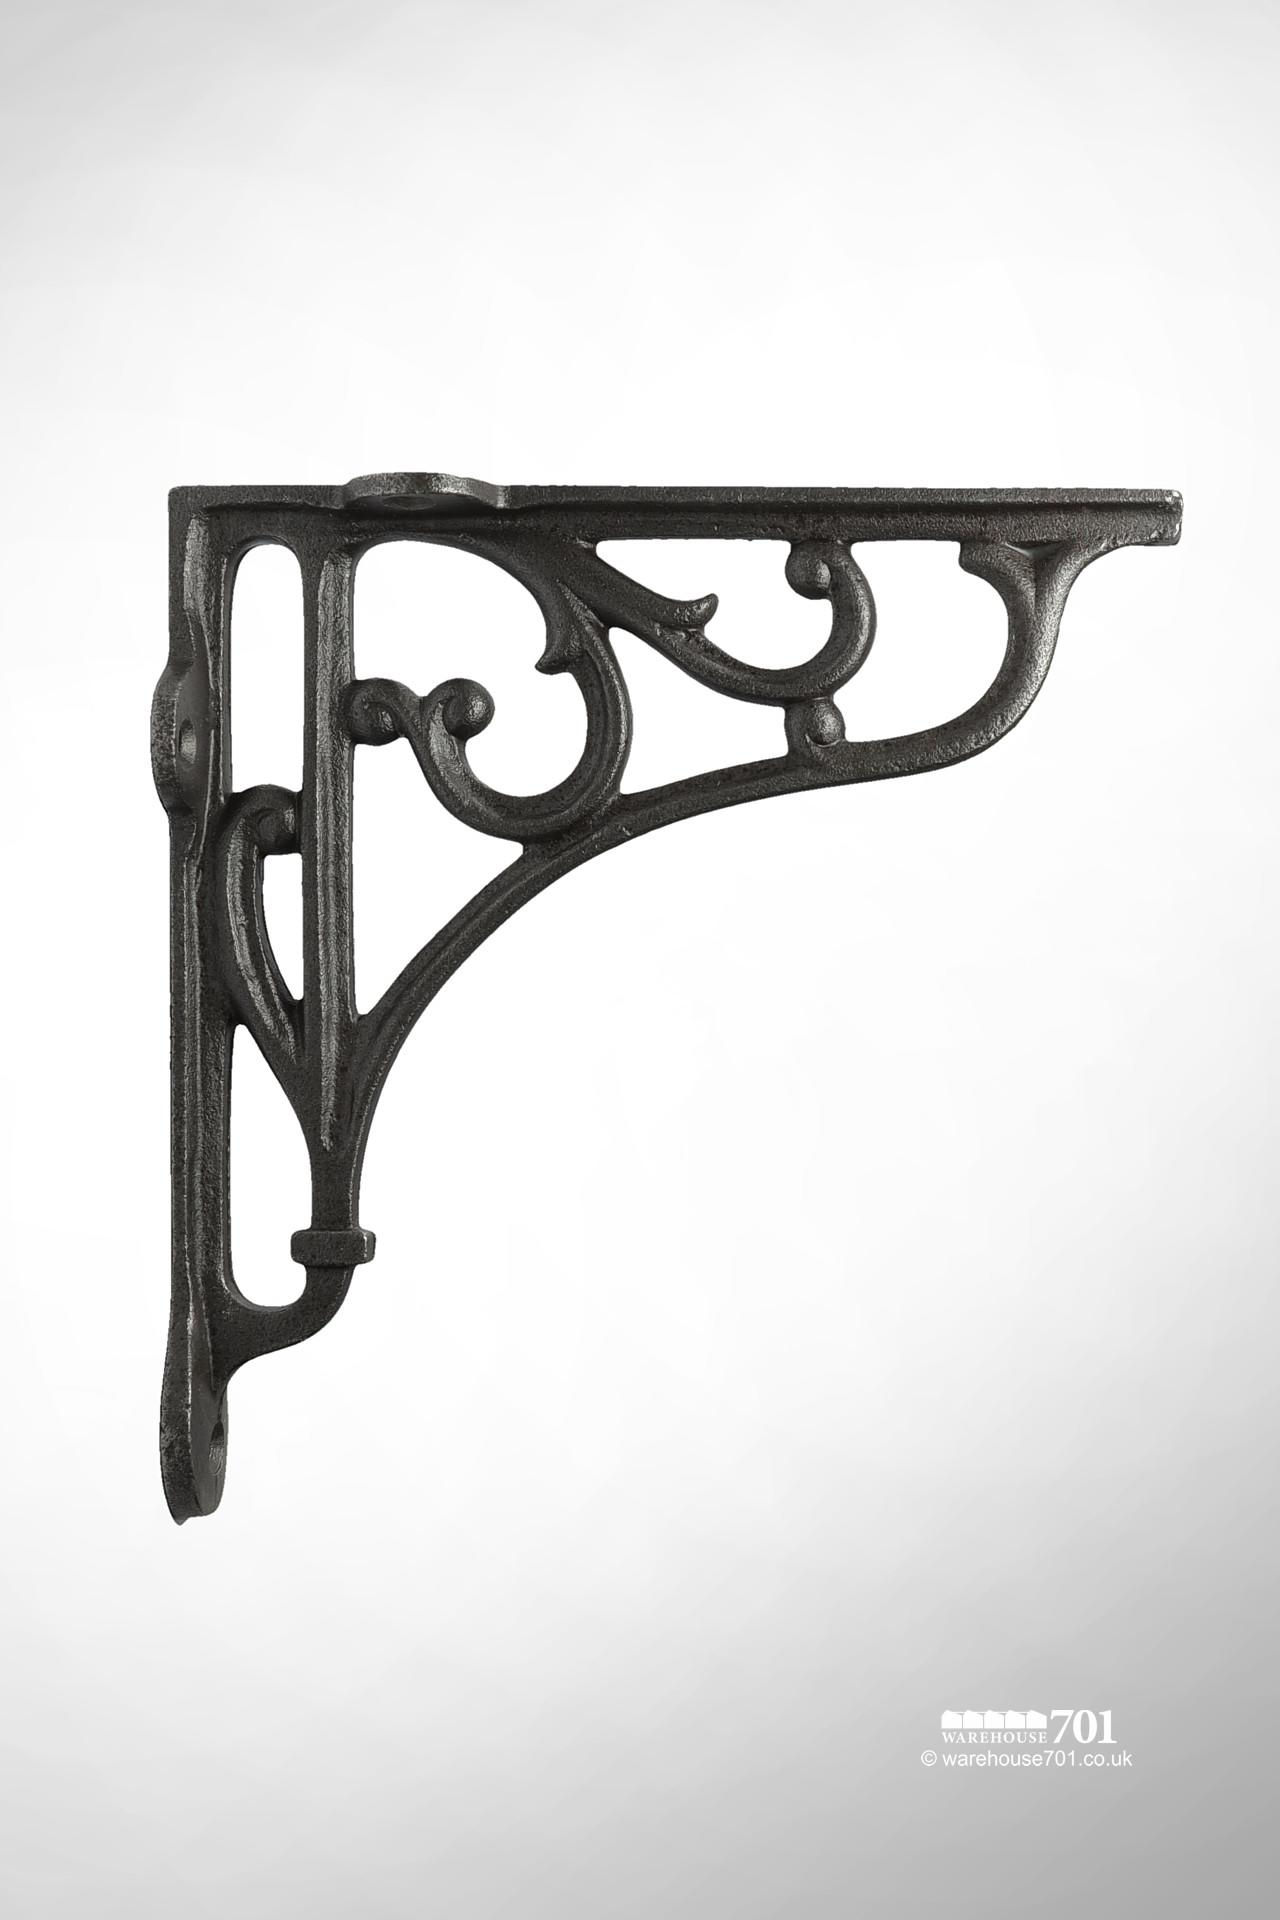 New Cast Iron Shelf or Wall Bracket with a Decorative Scroll Design #3